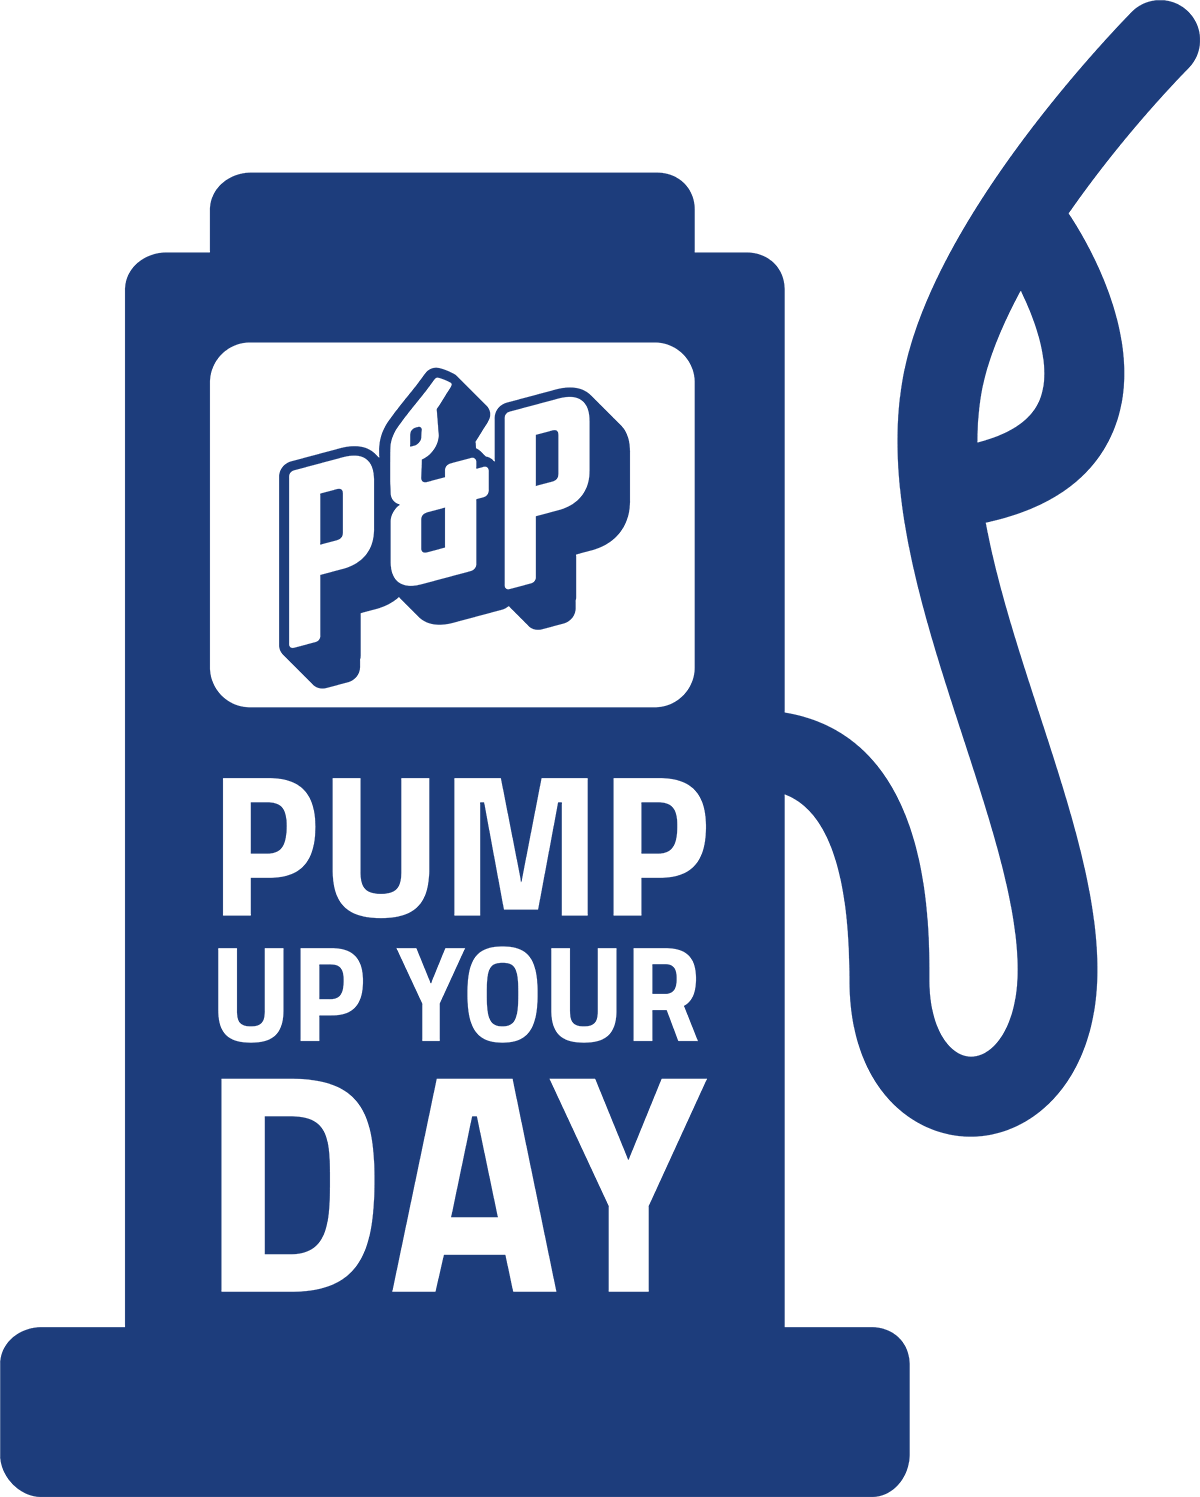 Pump Up You Day